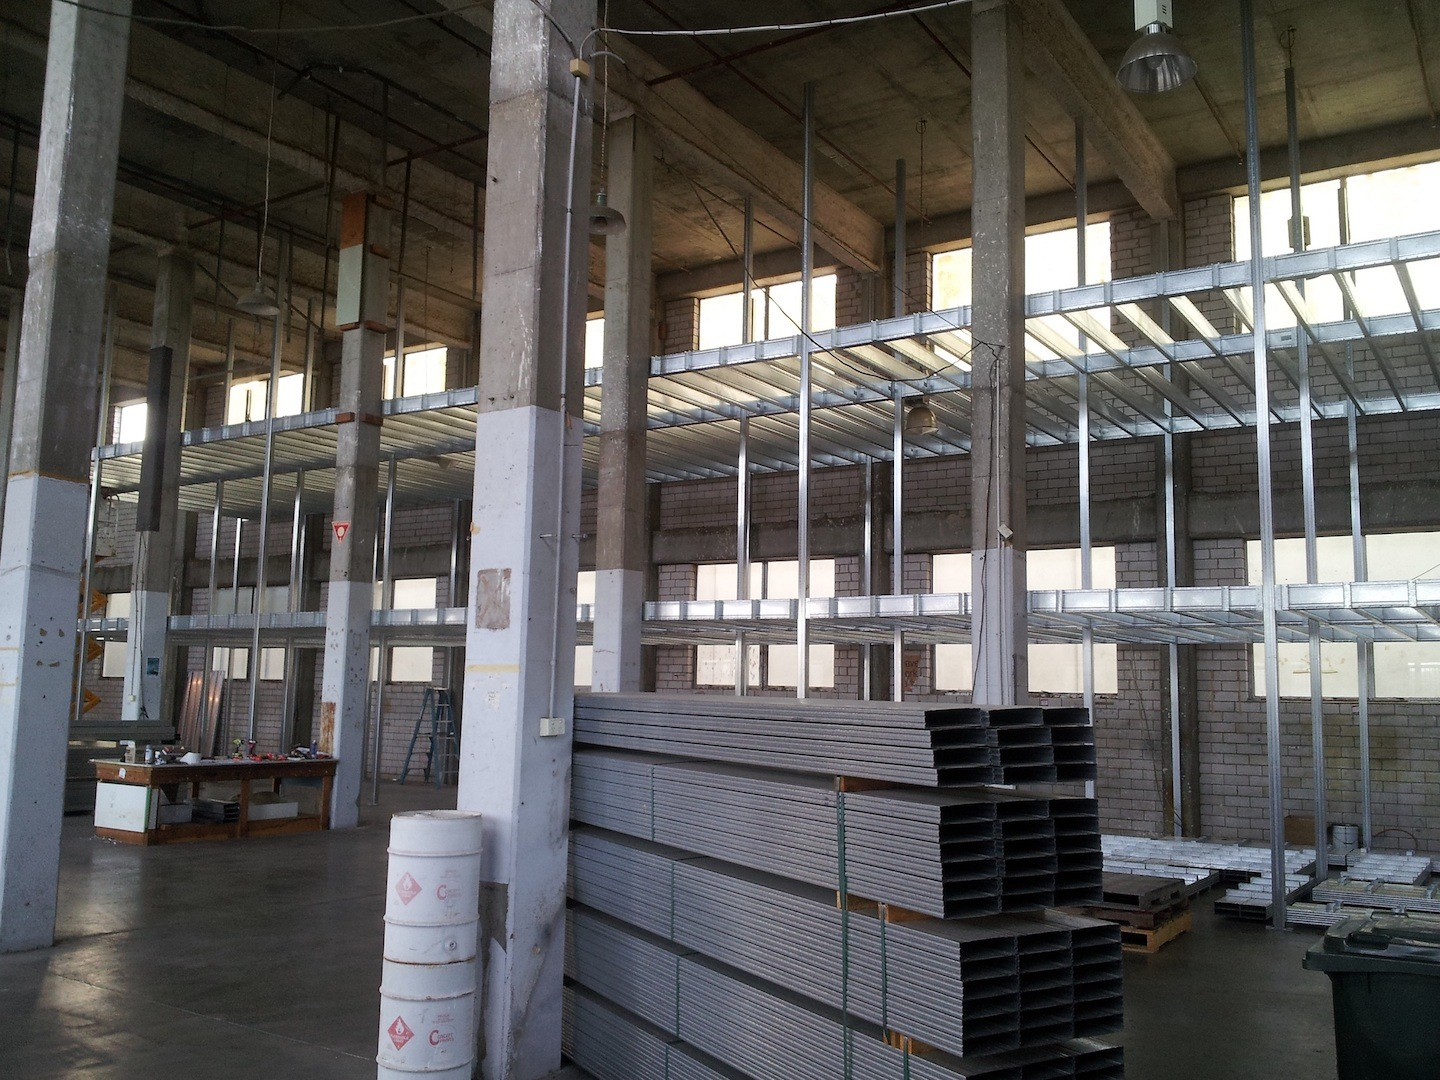 Installing of Boxspan mezzanine floor frames in a factory for storage lockers.